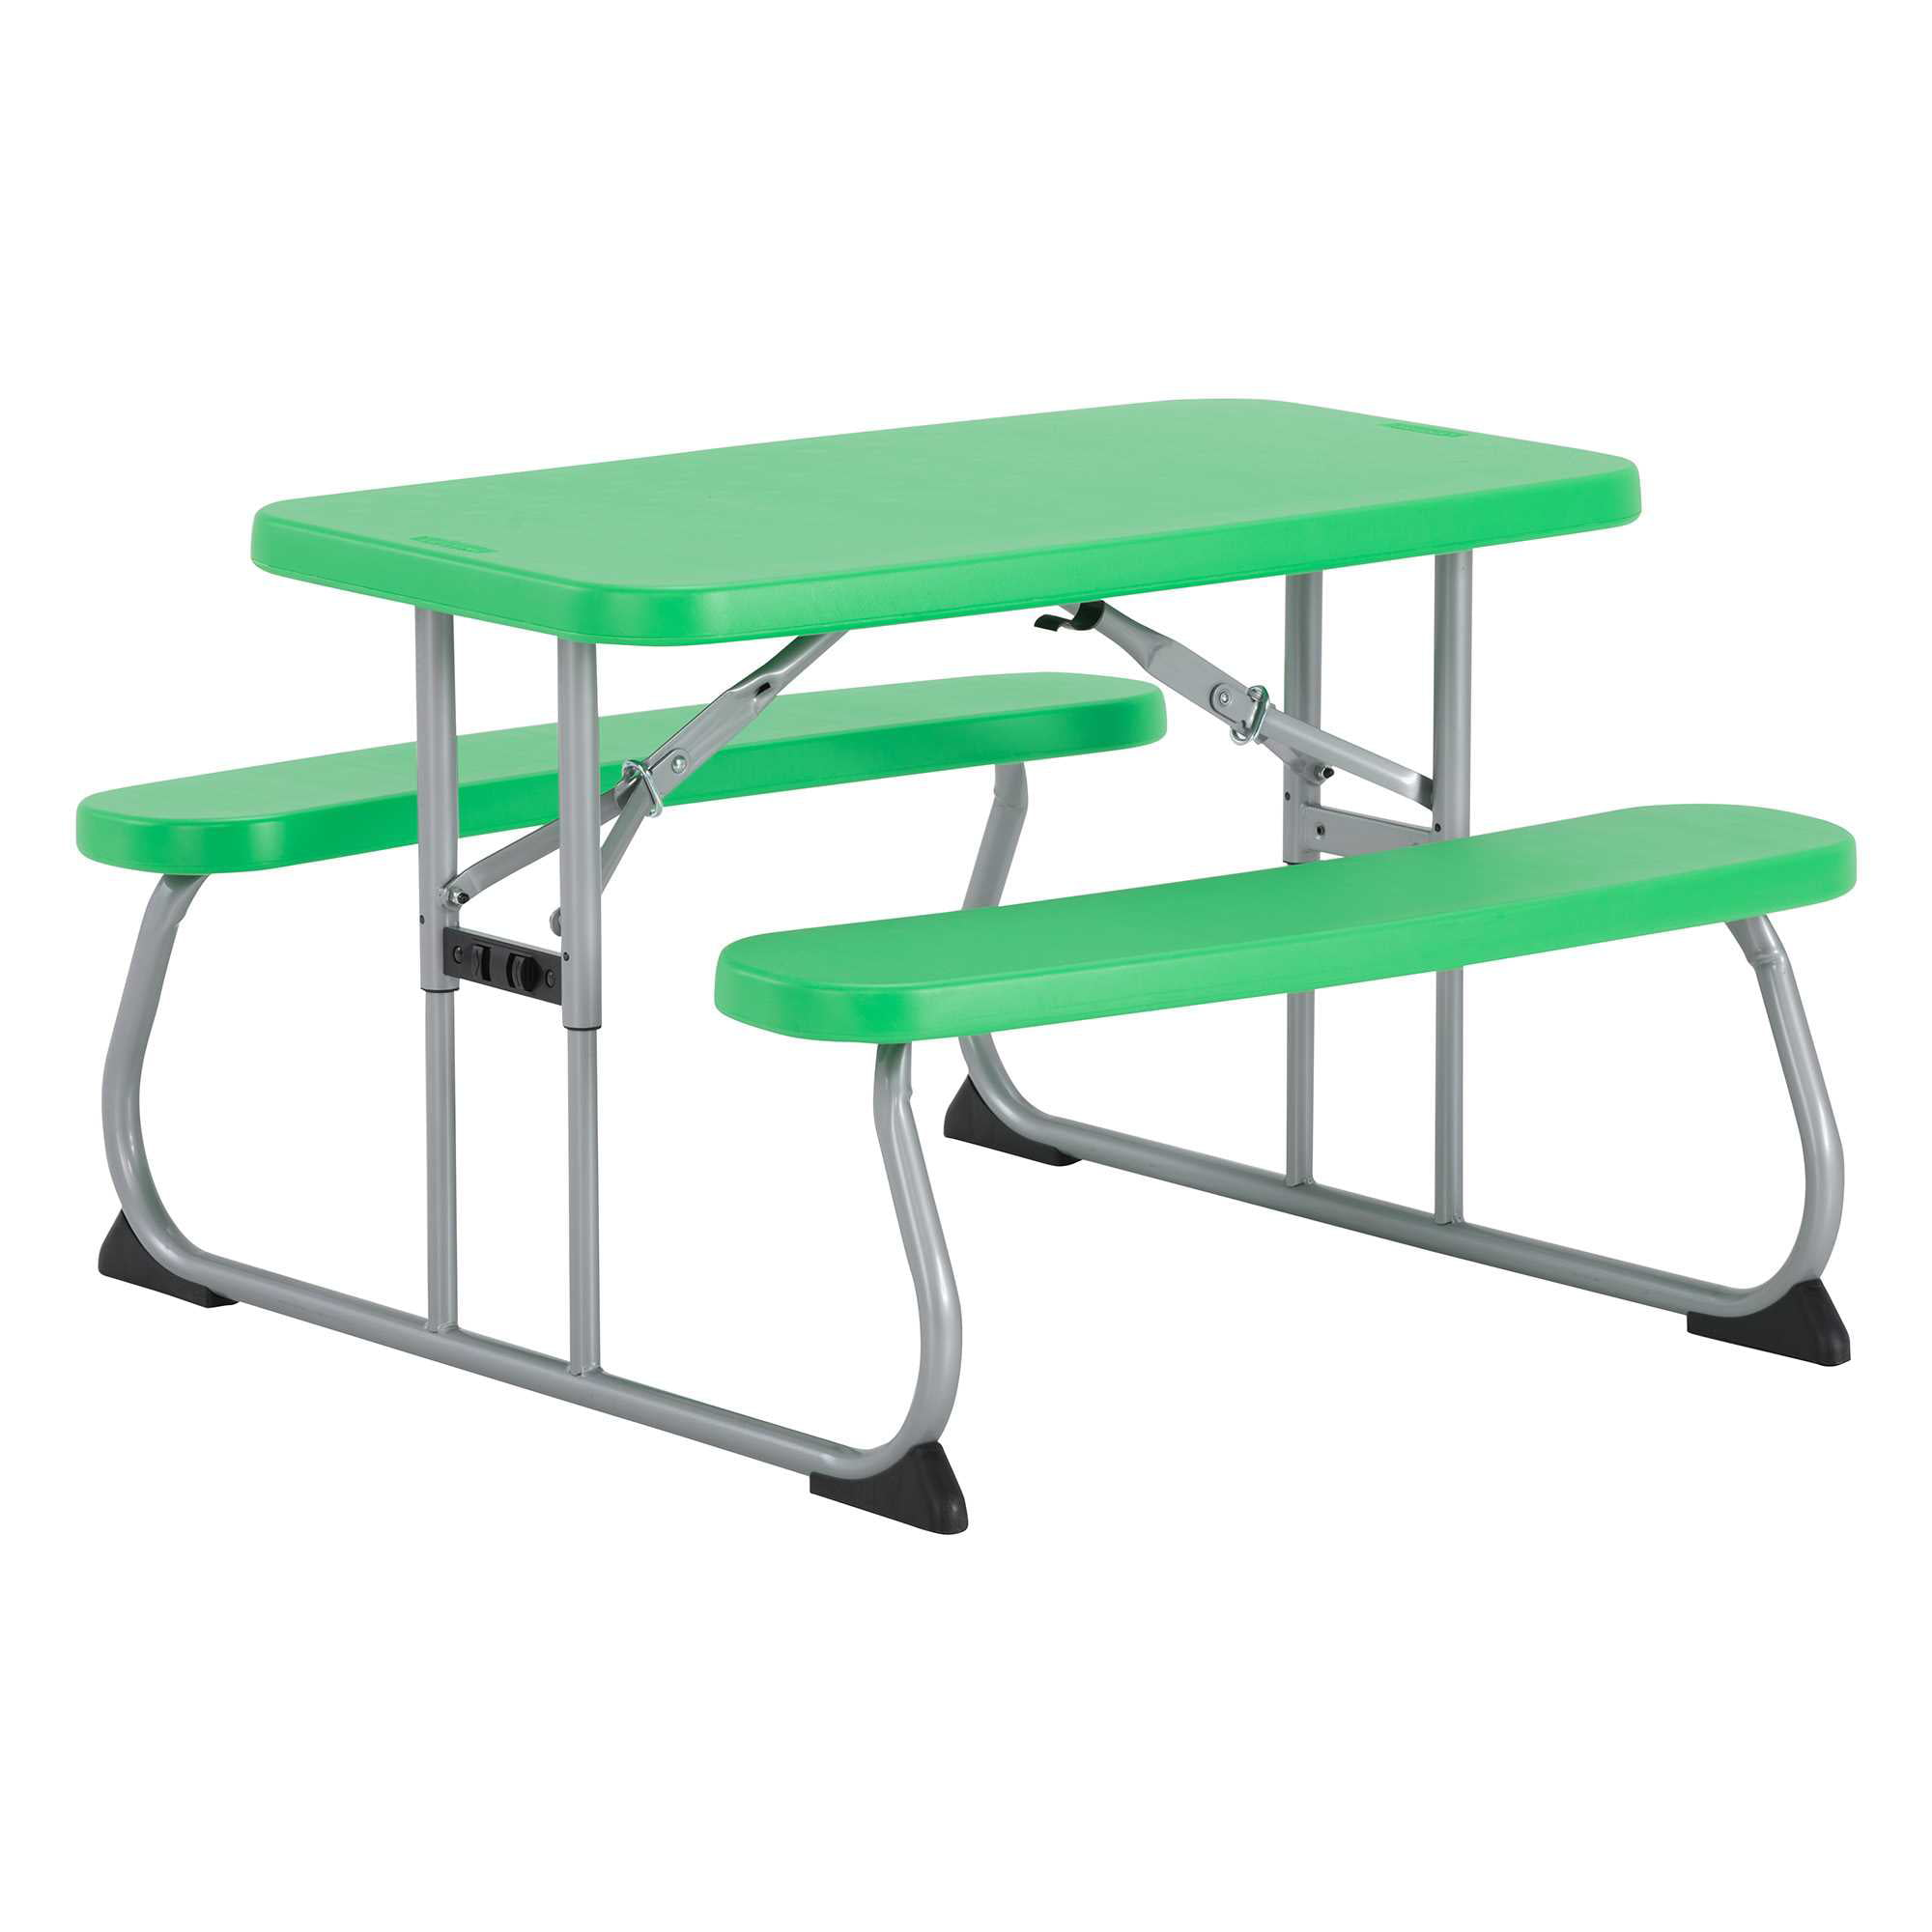 Lifetime Kid's Picnic Table, Spring Green by Lifetime Products